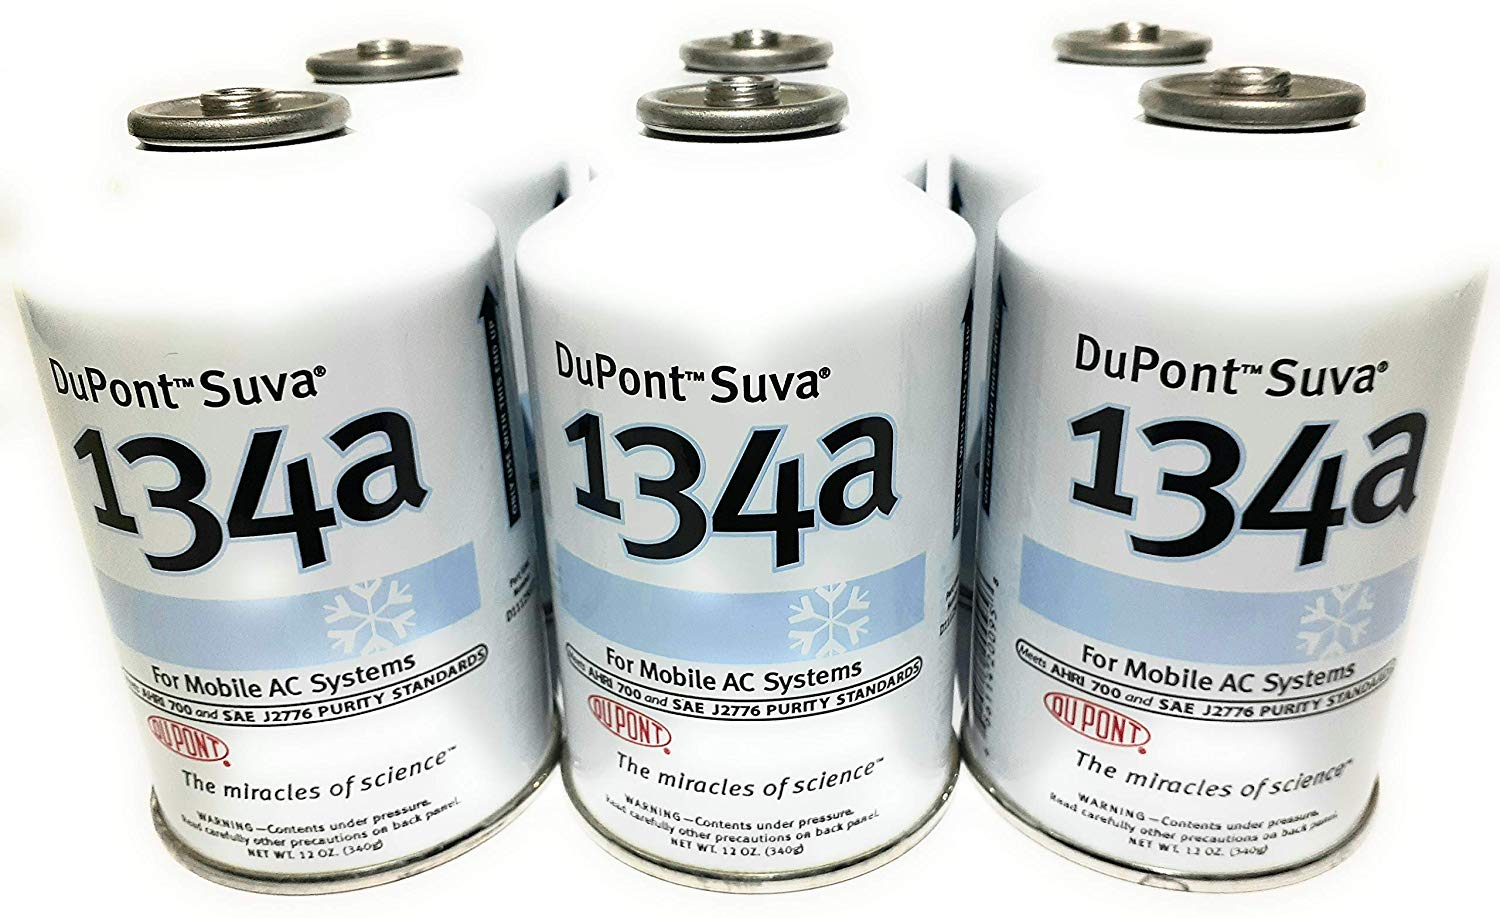 DuPont Suva R134a Automobile Refrigerant/Freon | Gas Kits for Air Conditioners